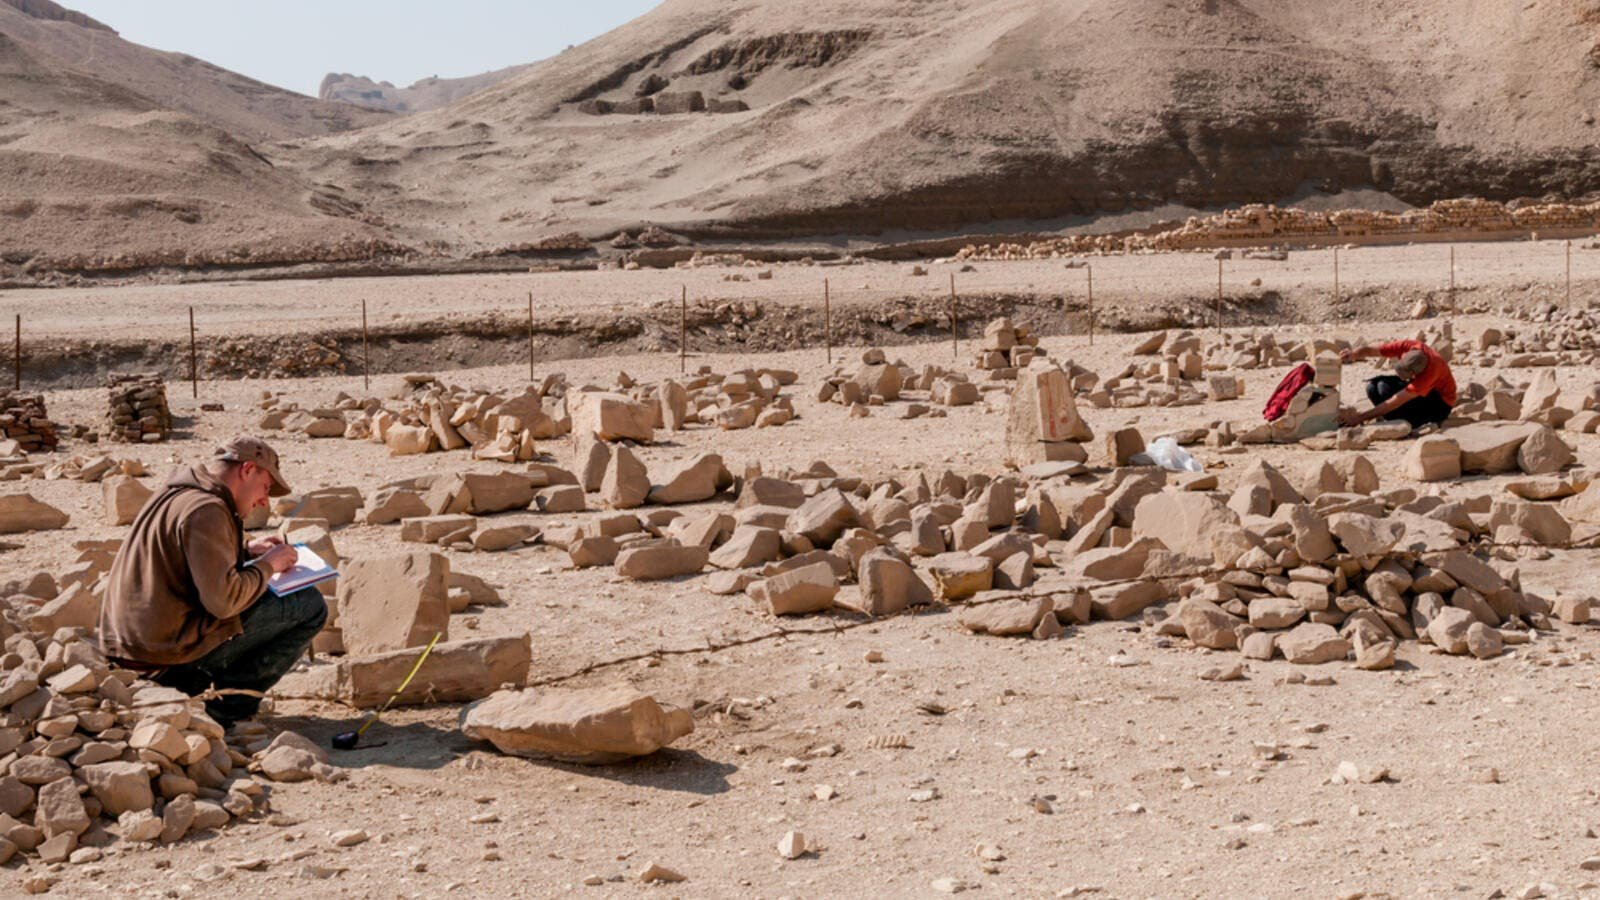 Archaeologists working near the Mortuary Temple of Queen Hatshepsut, located on the west bank of the Nile near the Valley of the Kings in Egypt. (Shutterstock/ File Photo)